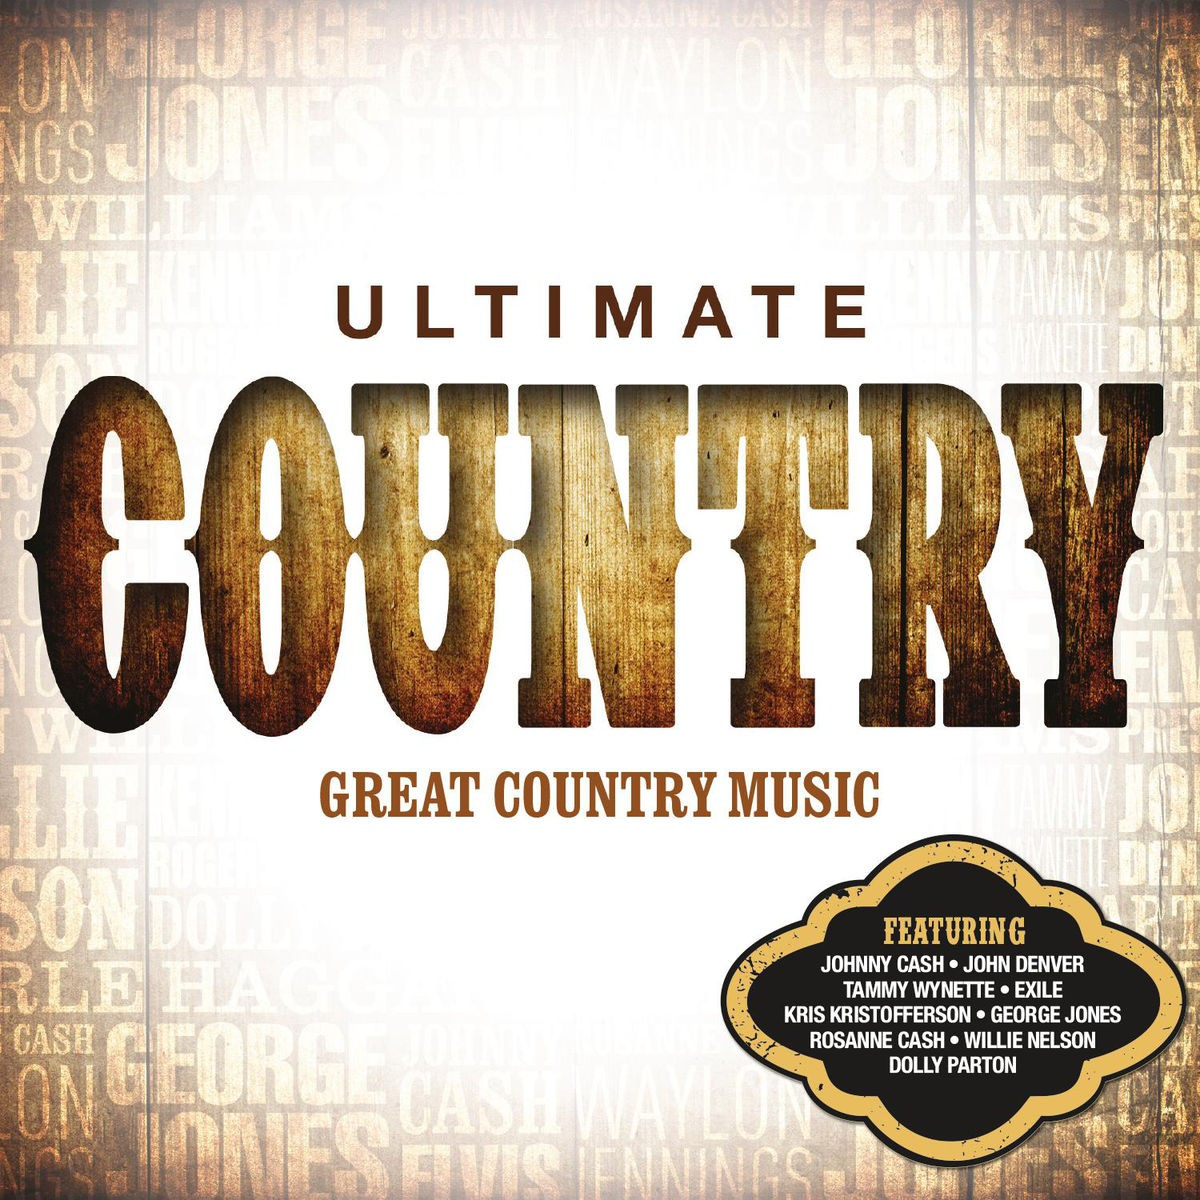 Ultimate Country Cd Echo S Record Bar Online Store